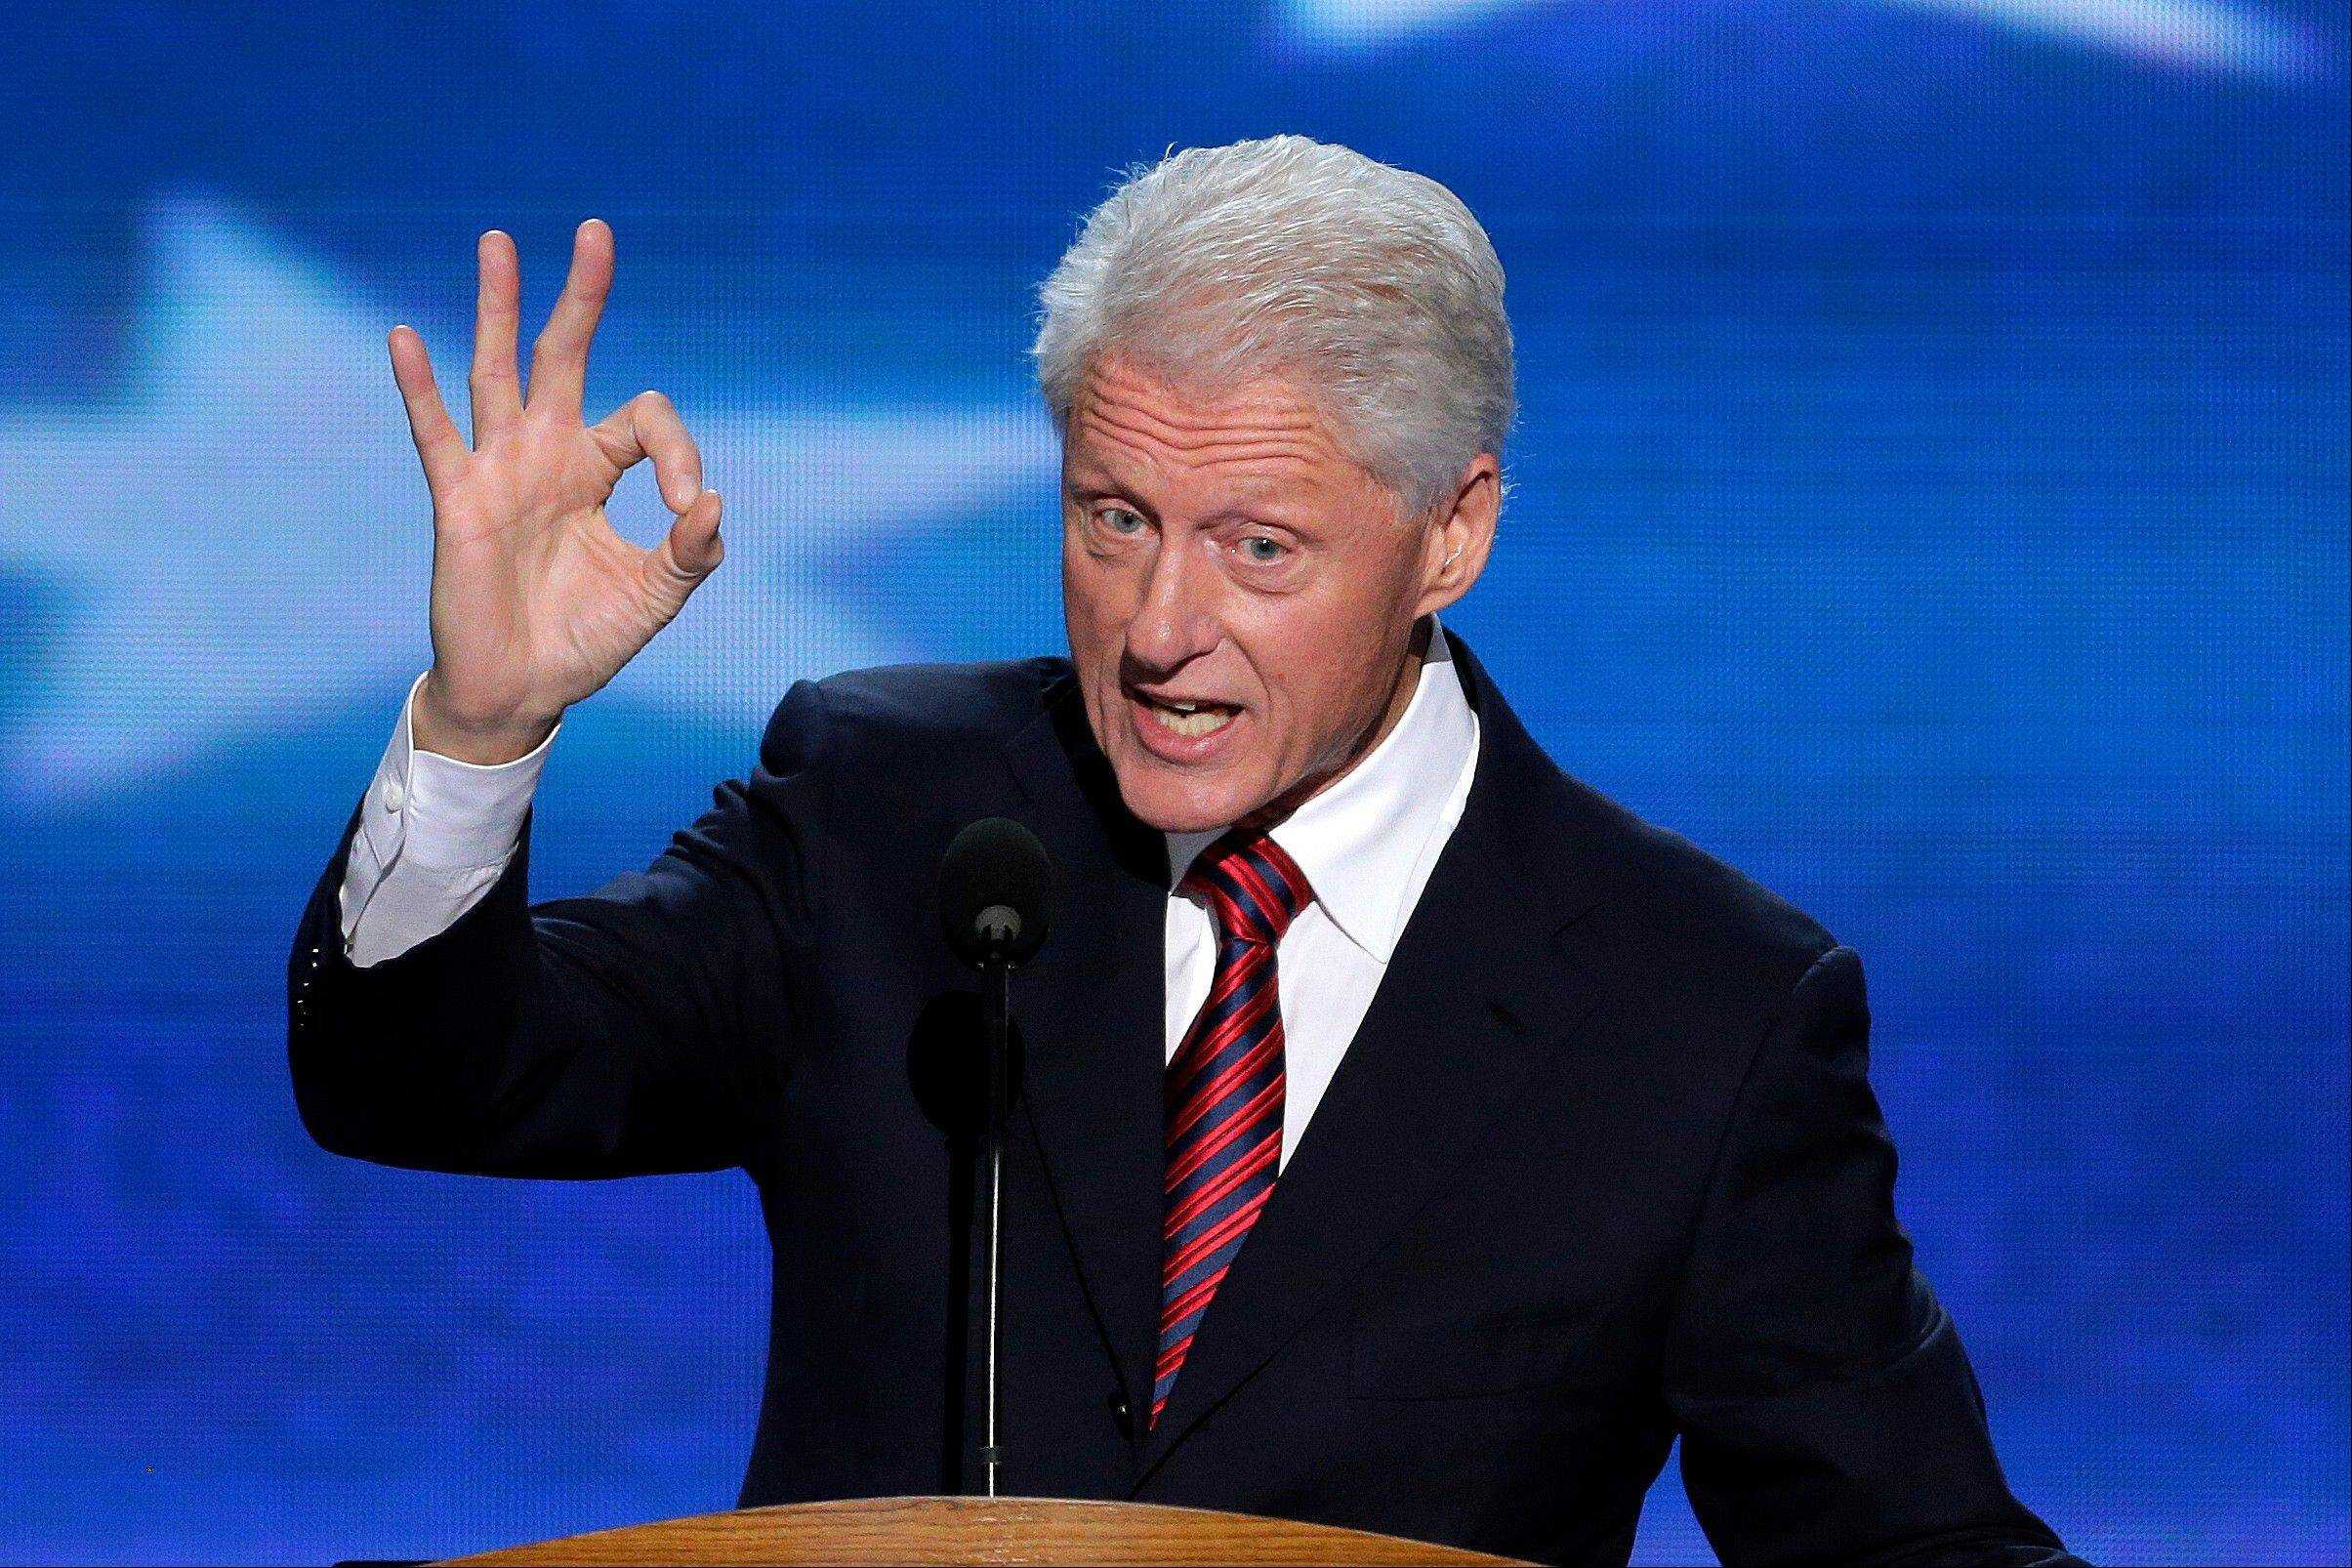 Former President Bill Clinton addresses the Democratic National Convention in Charlotte, N.C., Wednesday.